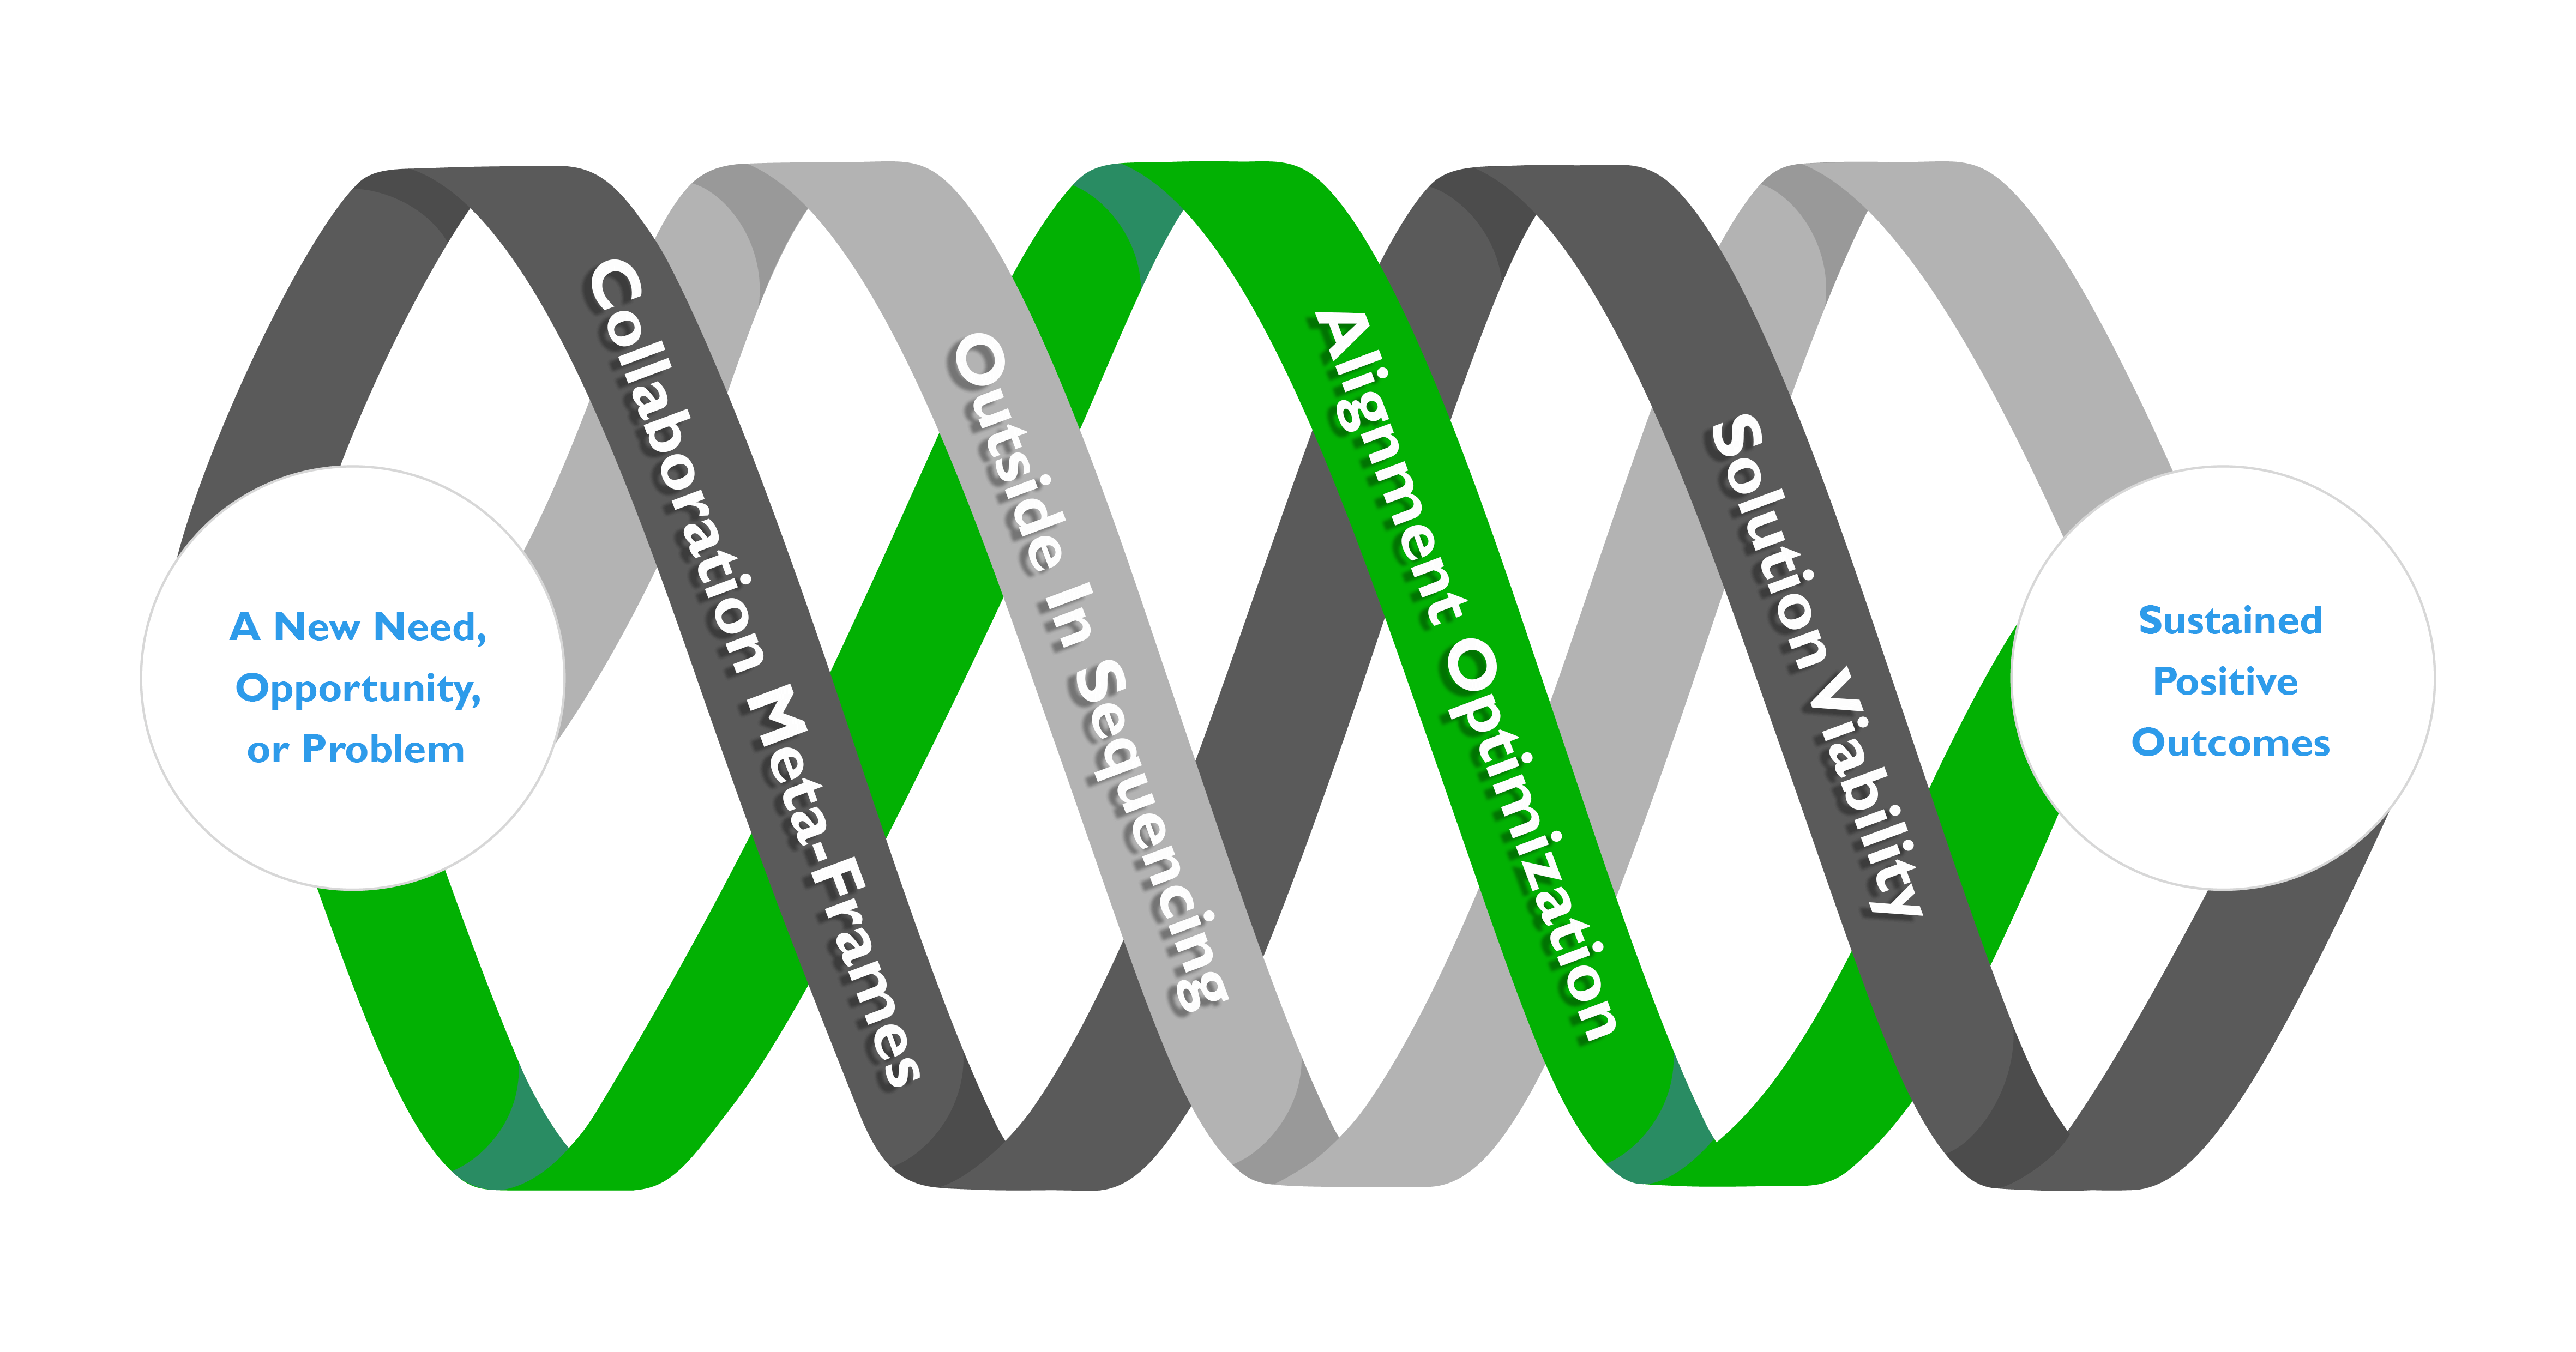 SchellingPoint's Strategic Collaboration helix image with a methods focus.